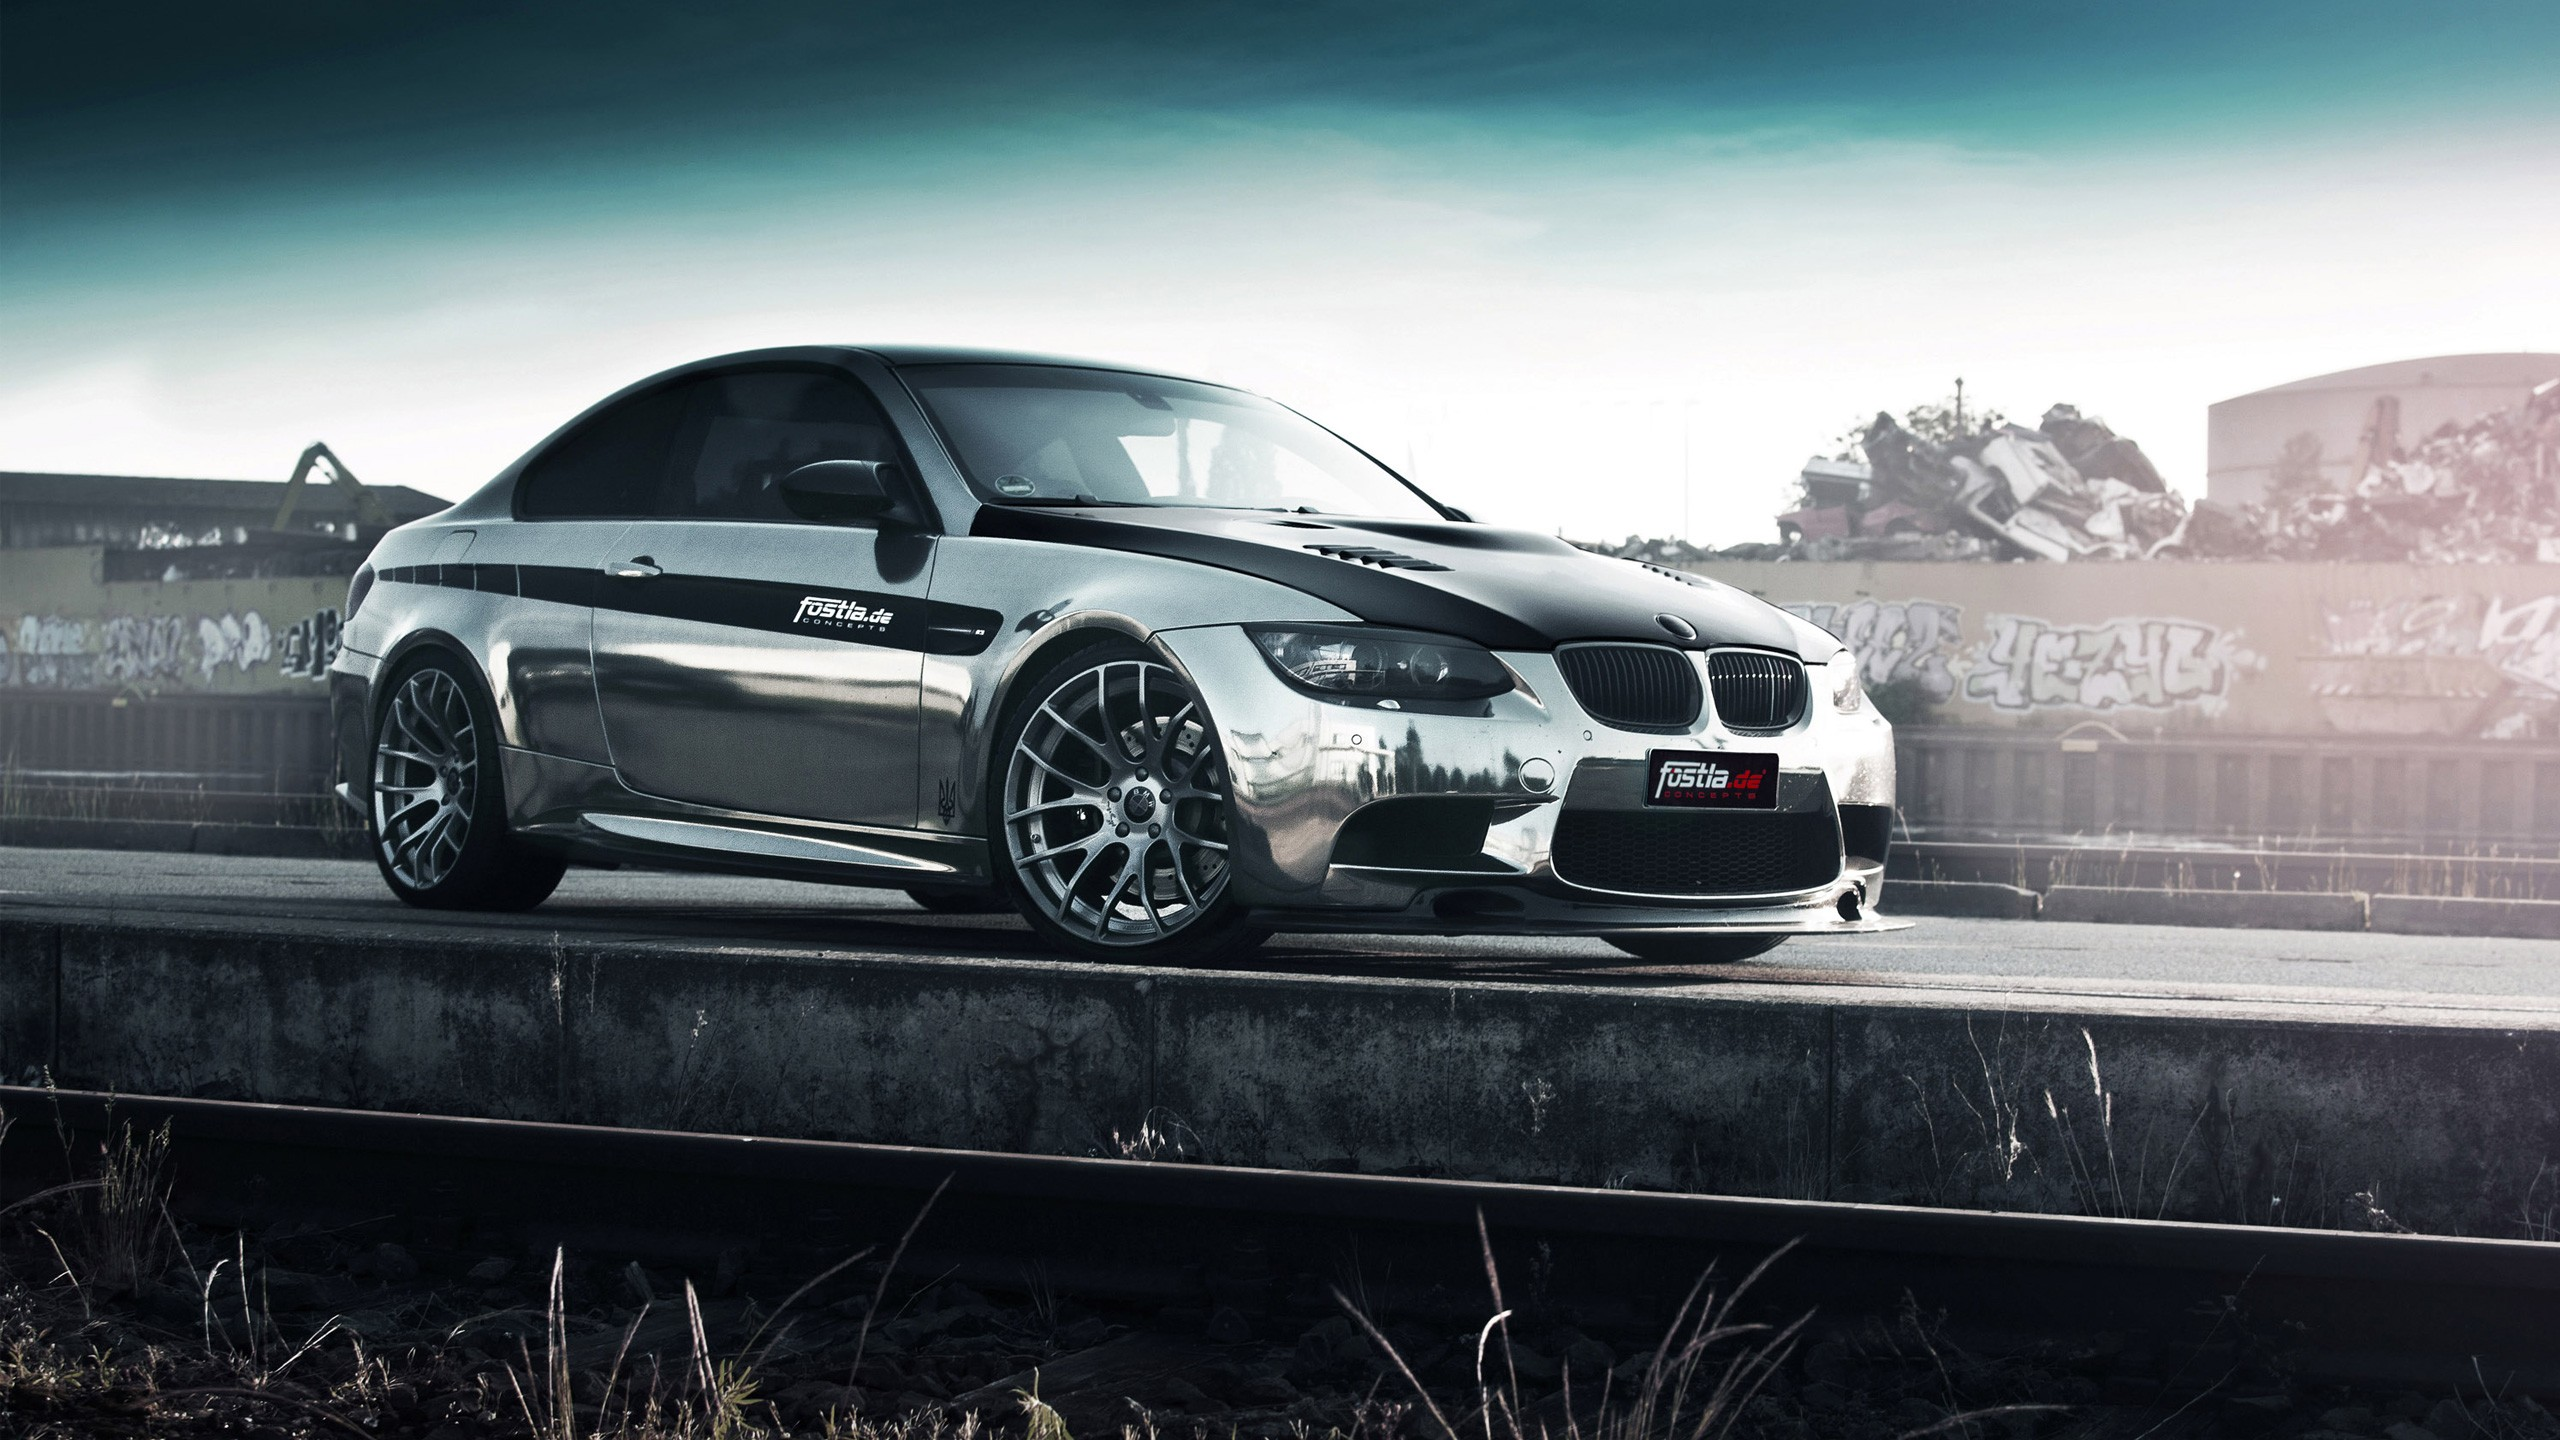 2016 fostla de bmw m3 coupe 2 wallpaper hd car wallpapers. Black Bedroom Furniture Sets. Home Design Ideas